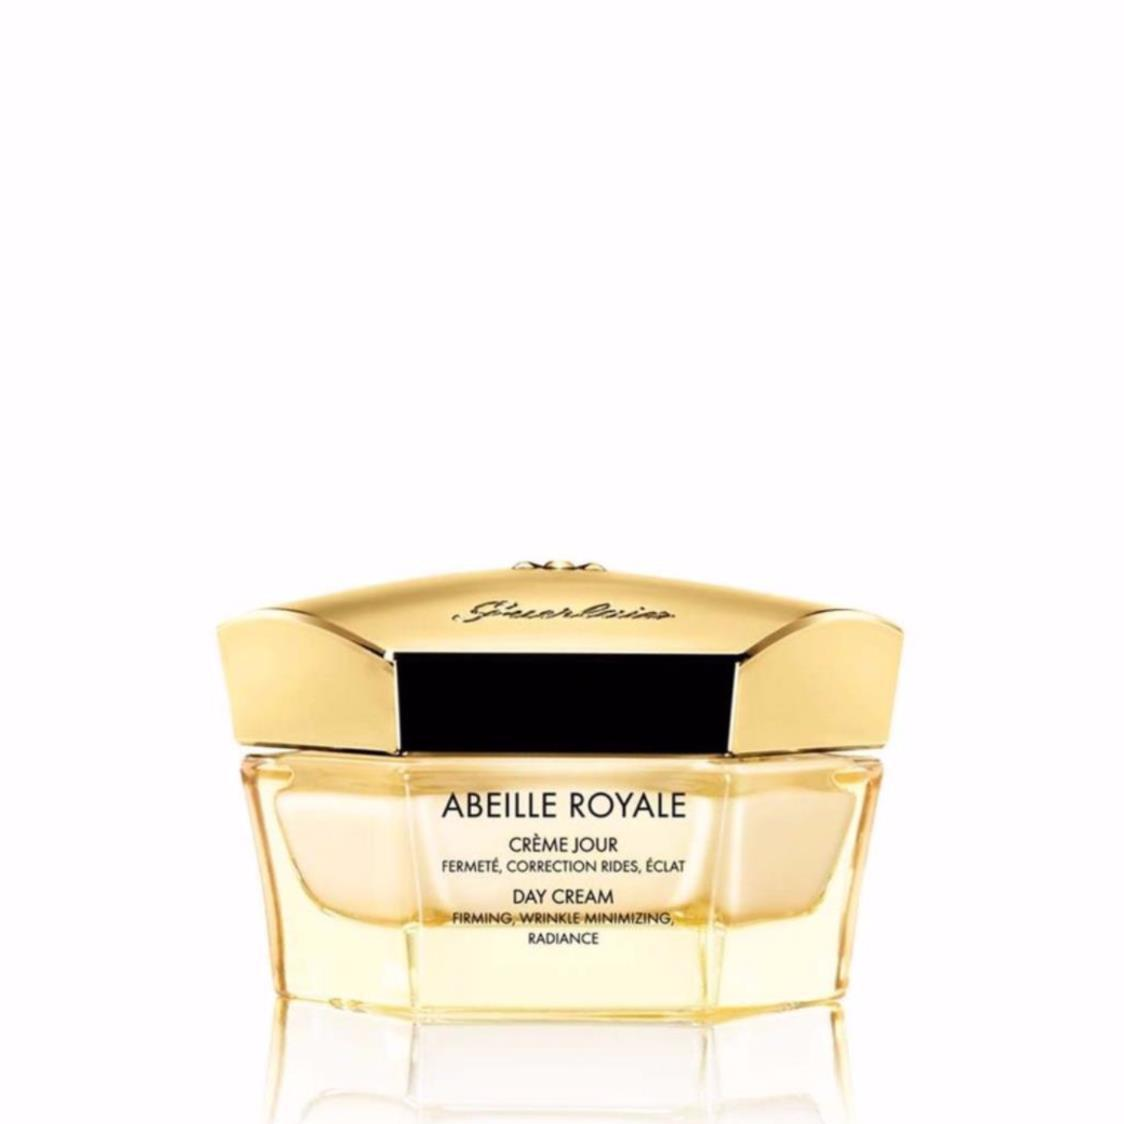 Abeille Royale Day Cream 50ml